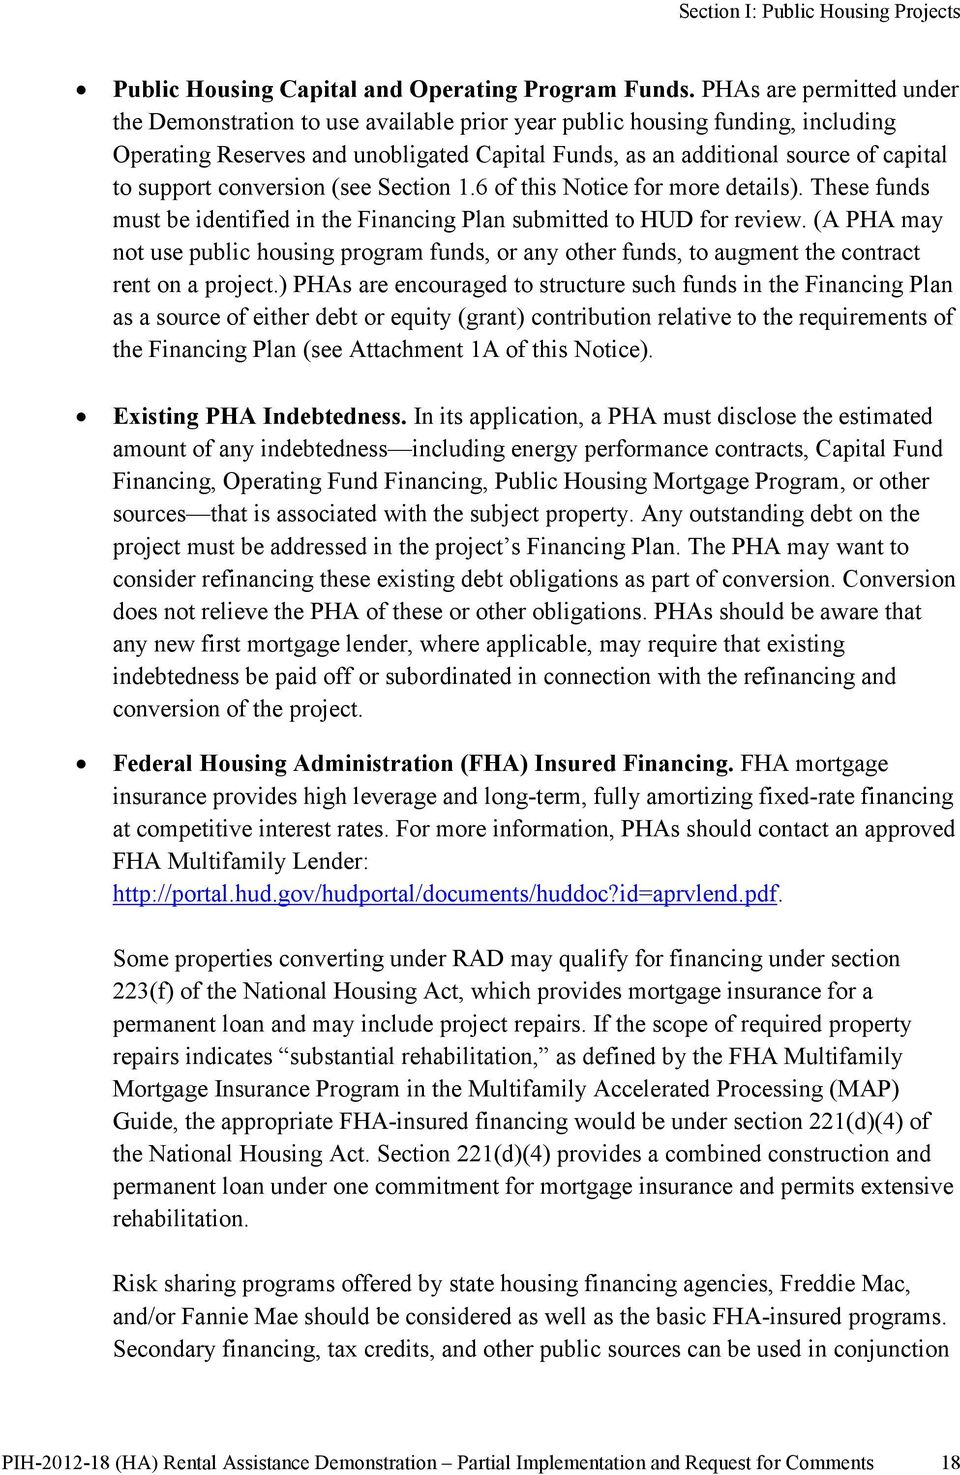 support conversion (see Section 1.6 of this Notice for more details). These funds must be identified in the Financing Plan submitted to HUD for review.